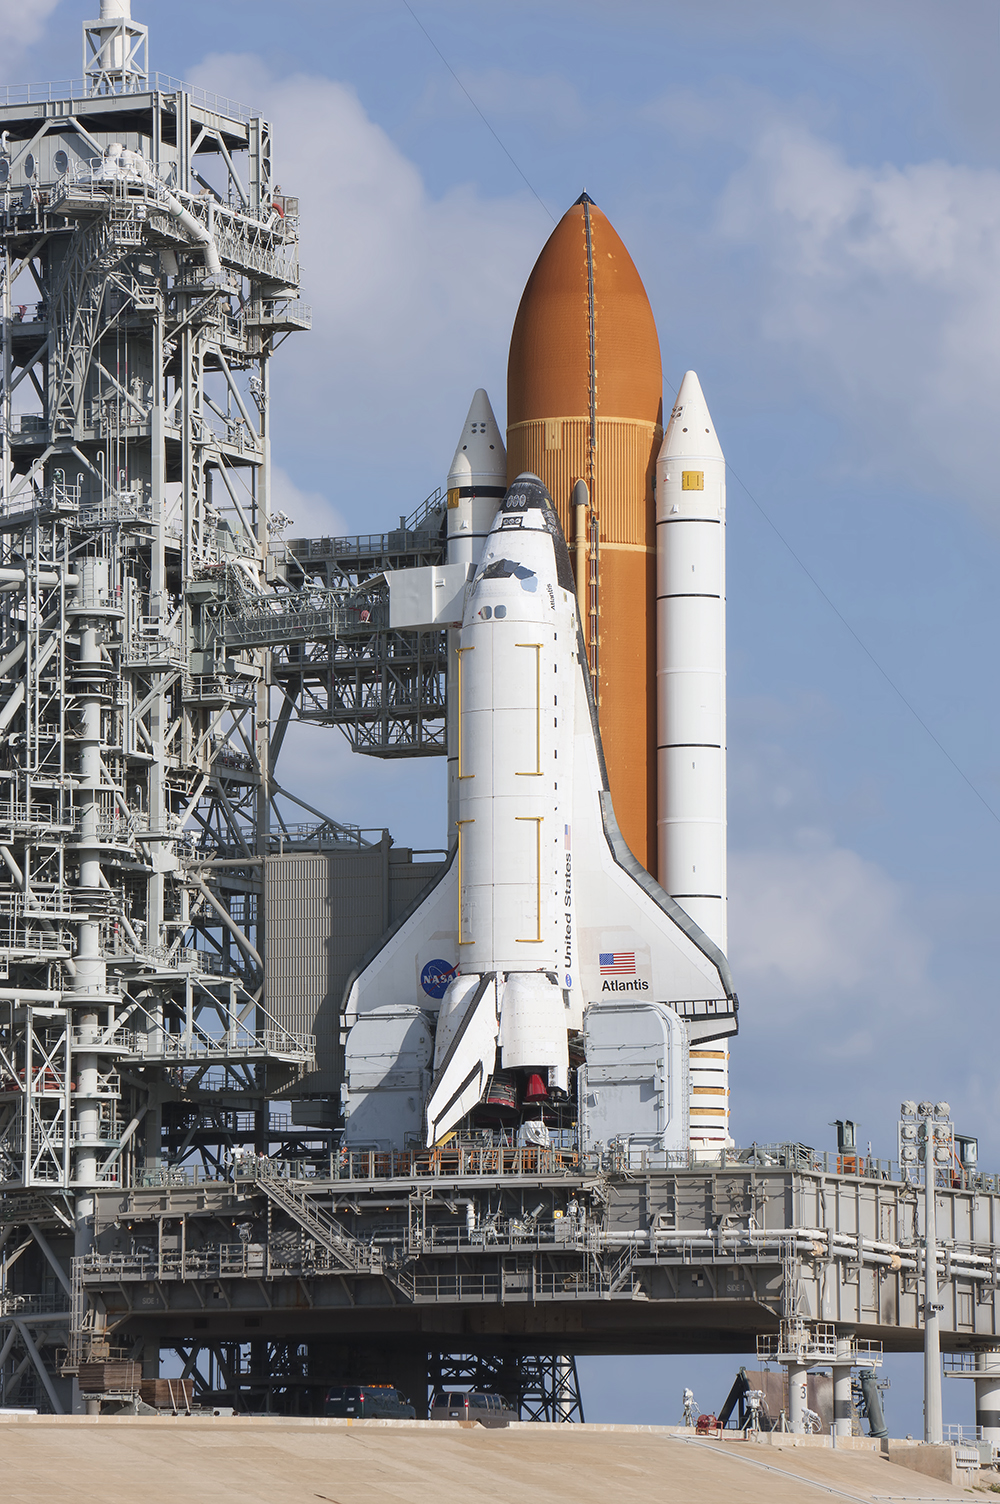 Space Shuttle Atlantis, on Pad 39A for STS-125